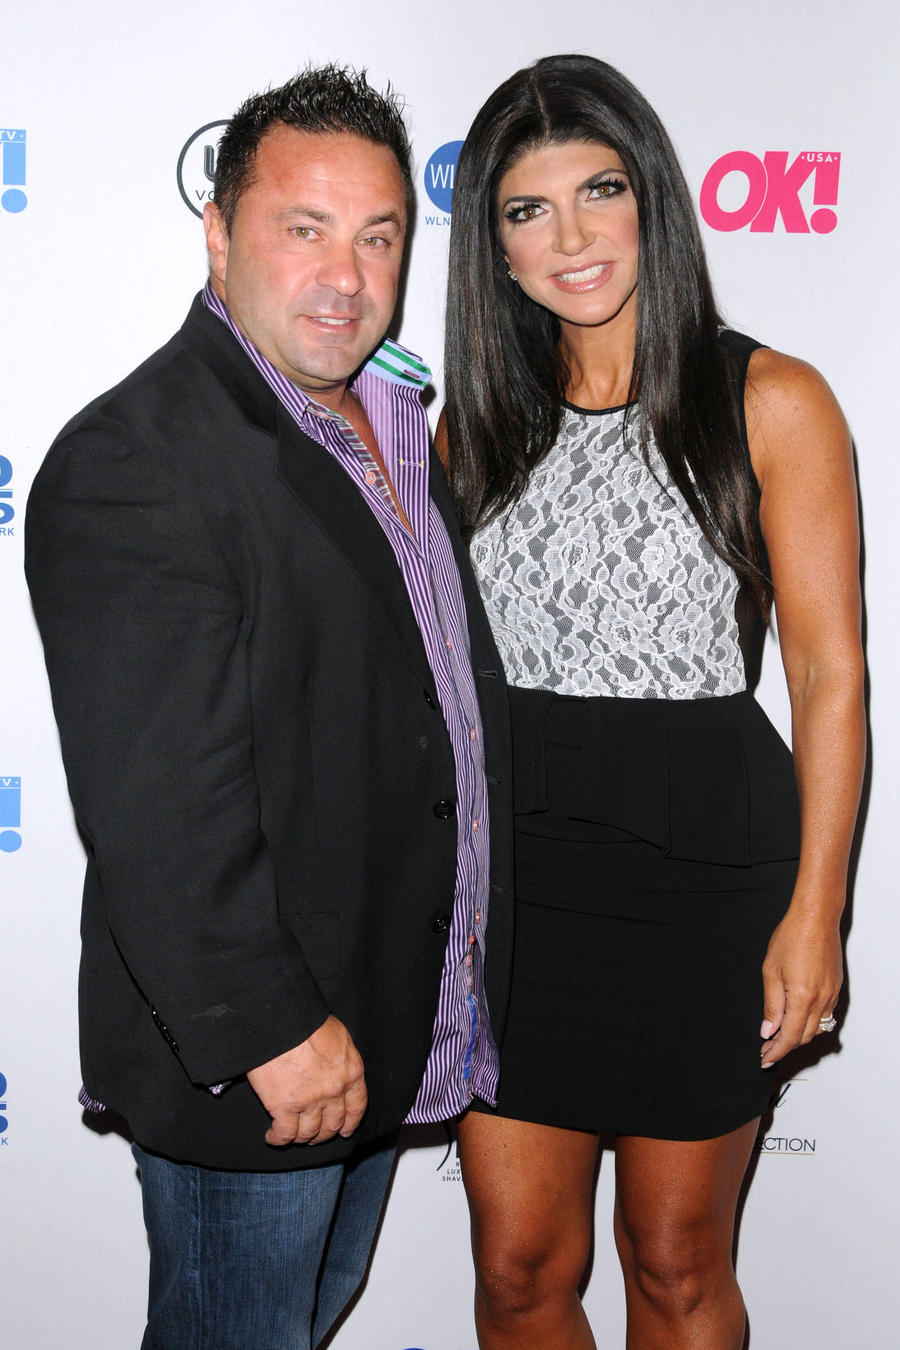 Teresa Giudice's Representative Dismisses Pregnancy Report